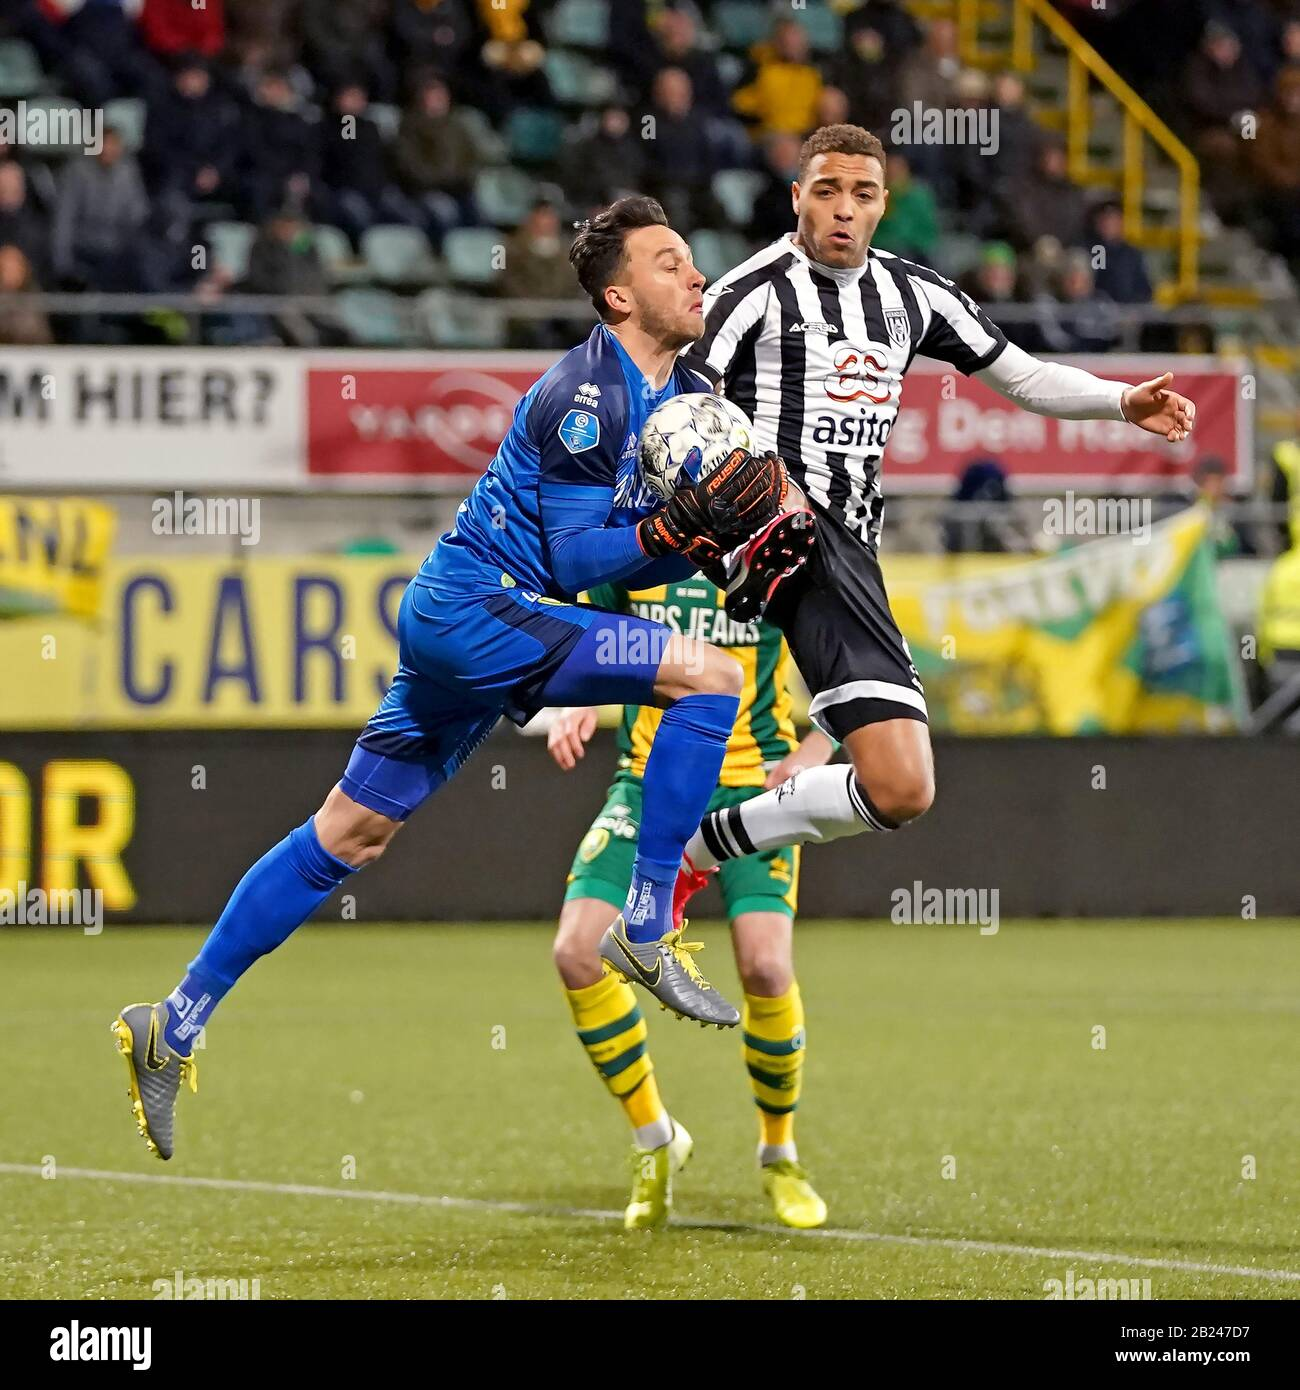 The Hague Netherlands 29th Feb 2020 The Hague 29 02 2020 Cars Jeans Stadion Ado Den Haag Dutch Eredivisie Football Season 2019 2020 Ado Goalkeeper Luuk Koopmans L And Heracles Player Cyriel Dessers R During